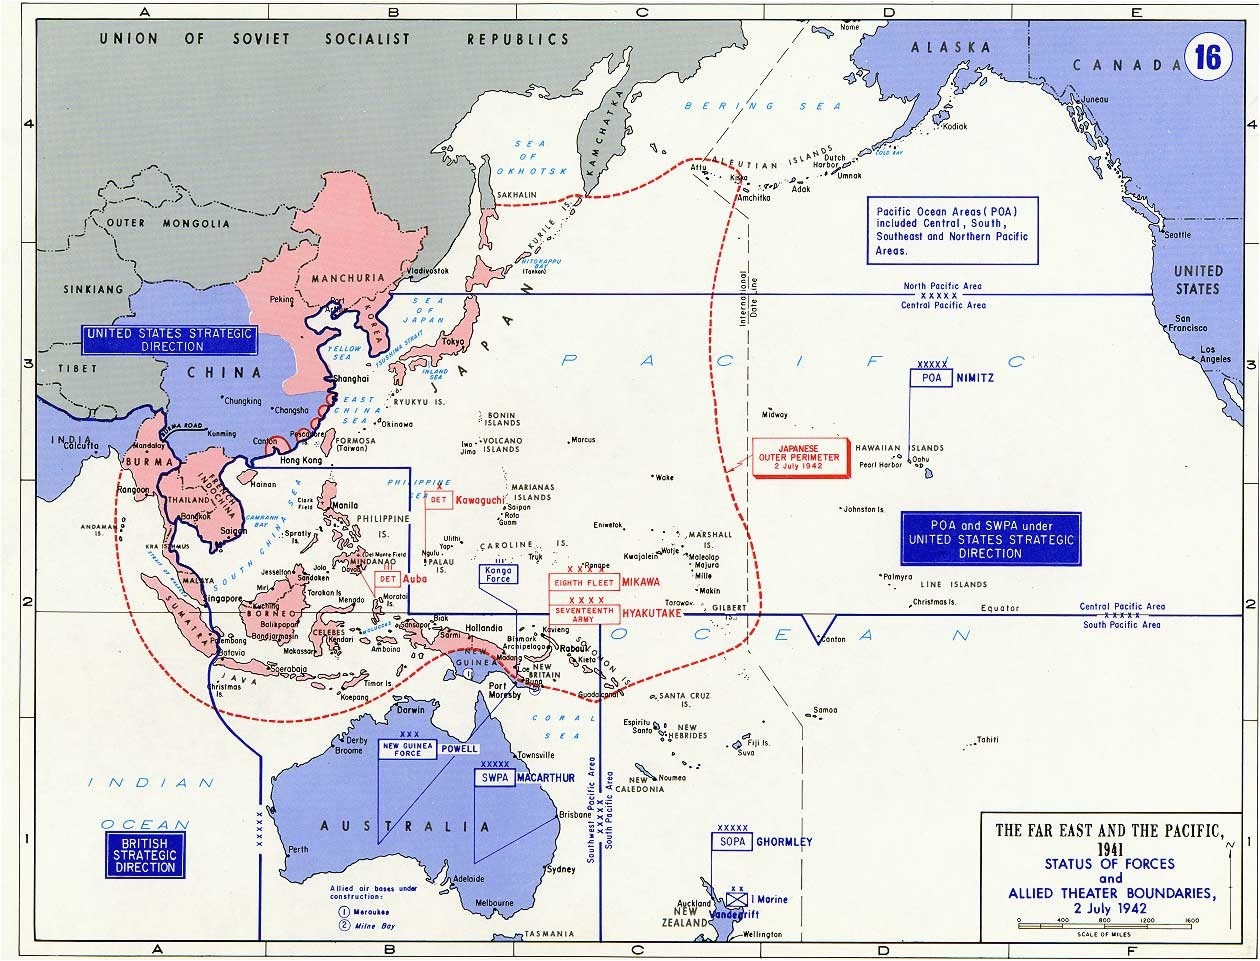 Asia Map Pics asia Europe Map Battle Map Showing the area the Far East and Pacific 1941 0d 316 14 Kb